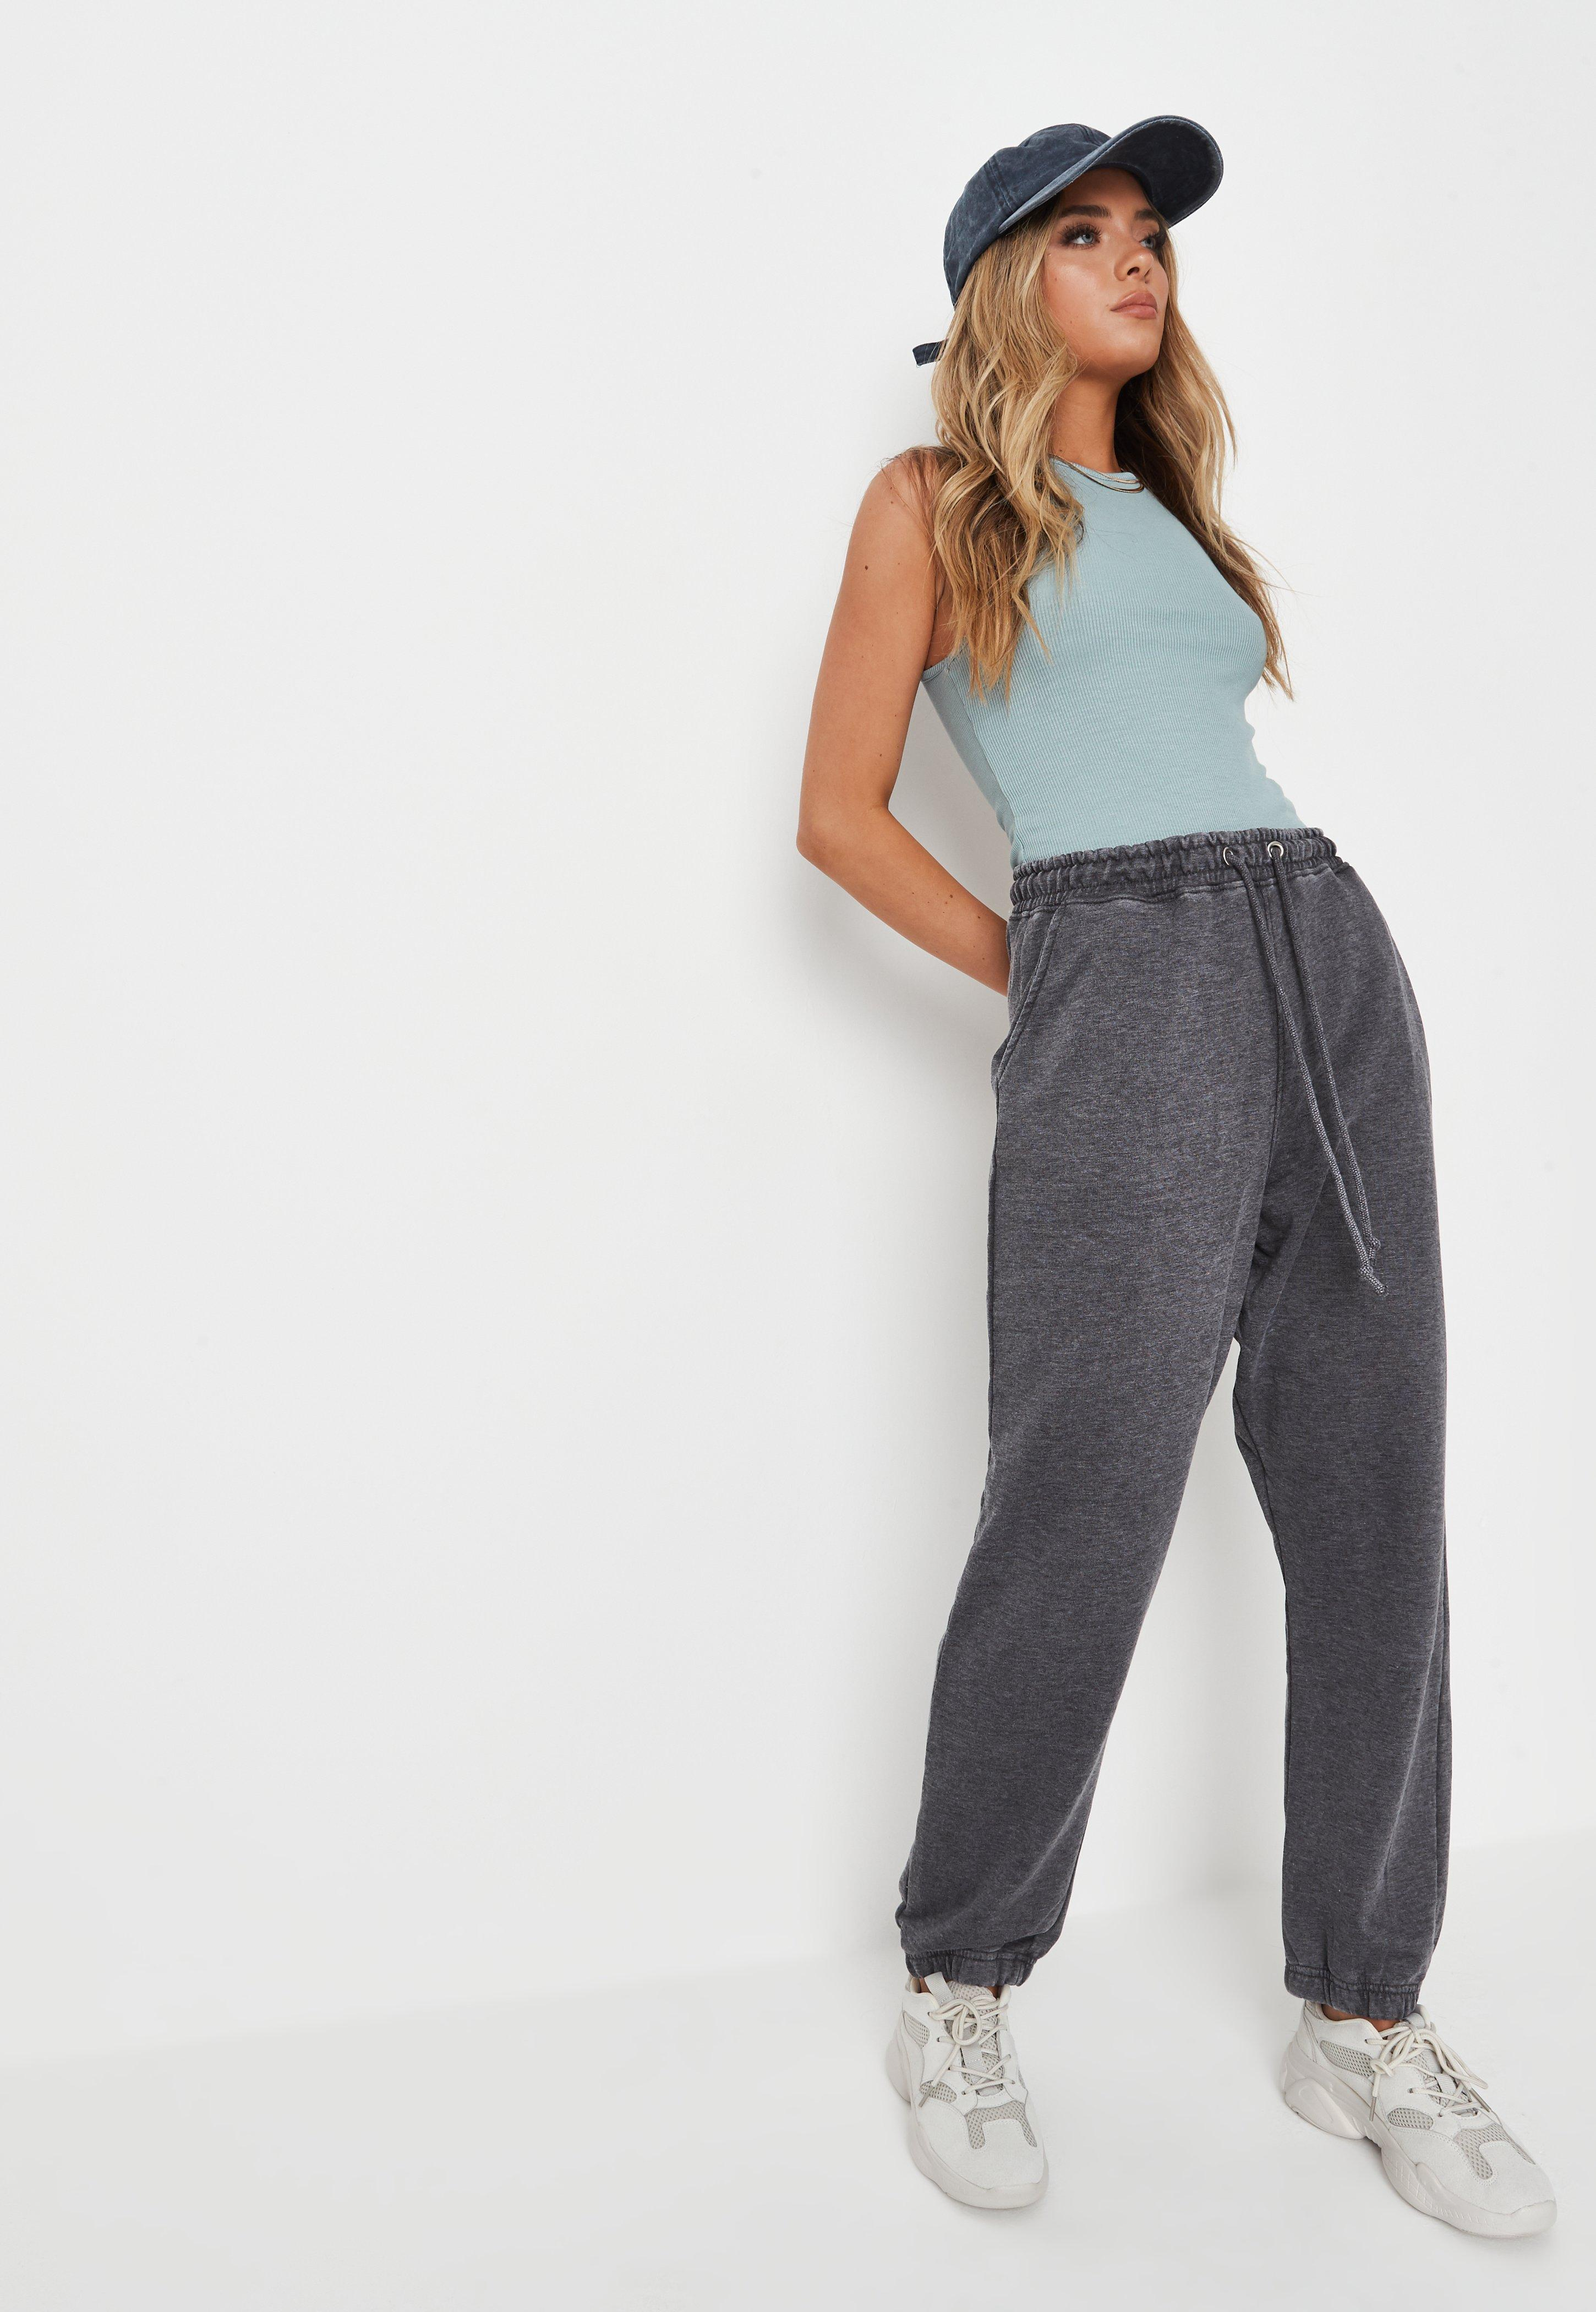 0d96f1532a654 Joggers | Women's Ripped & Satin Sweatpants - Missguided IE